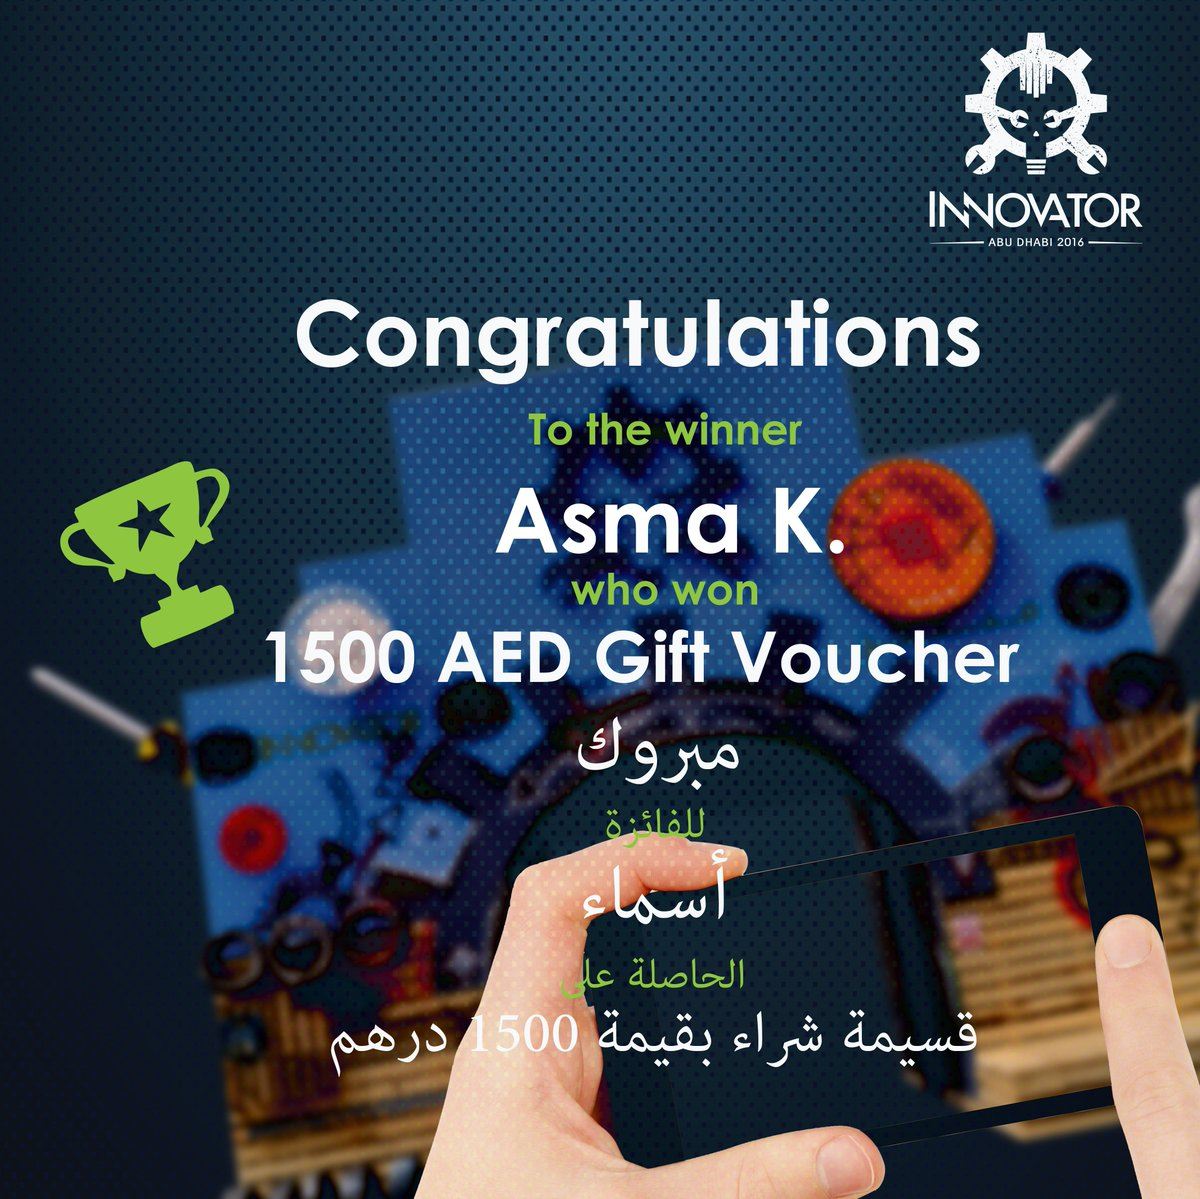 Congratulations to the winner Asma K. who participated in our Hashtag Competition and won a 1500AED gift Voucher! https://t.co/5yjZBsEhCj